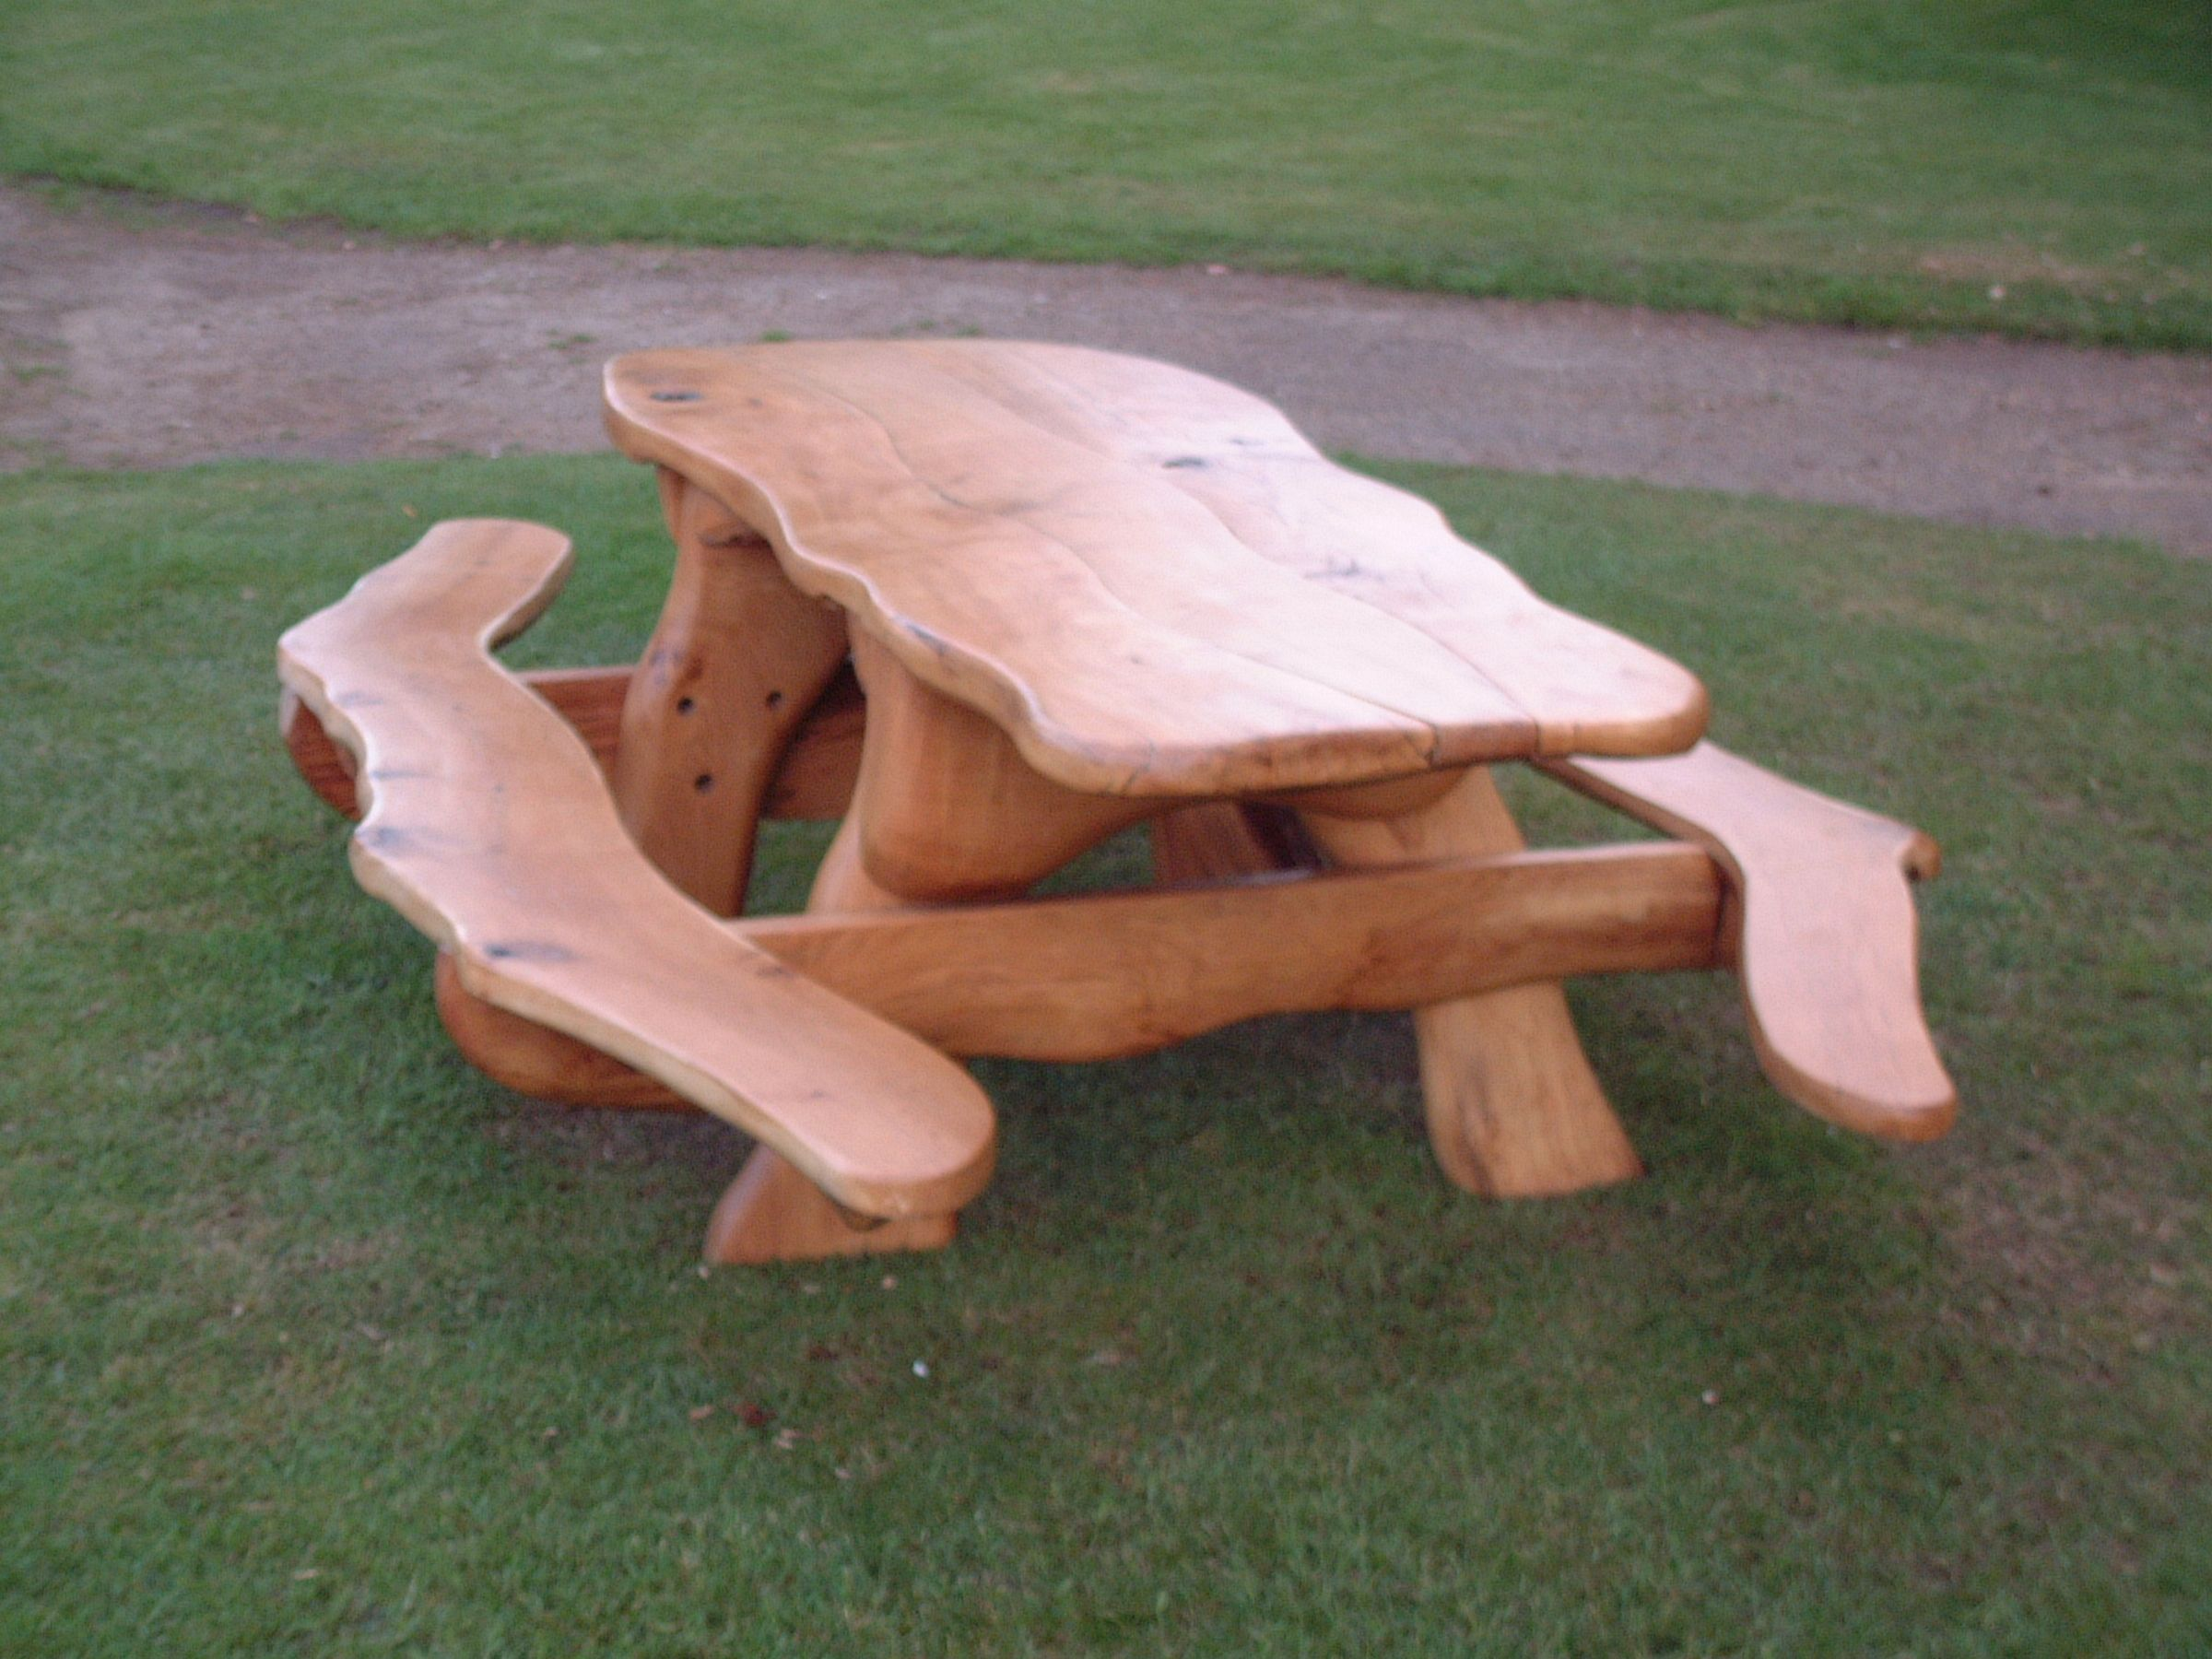 my next picnic tablelove wood tables